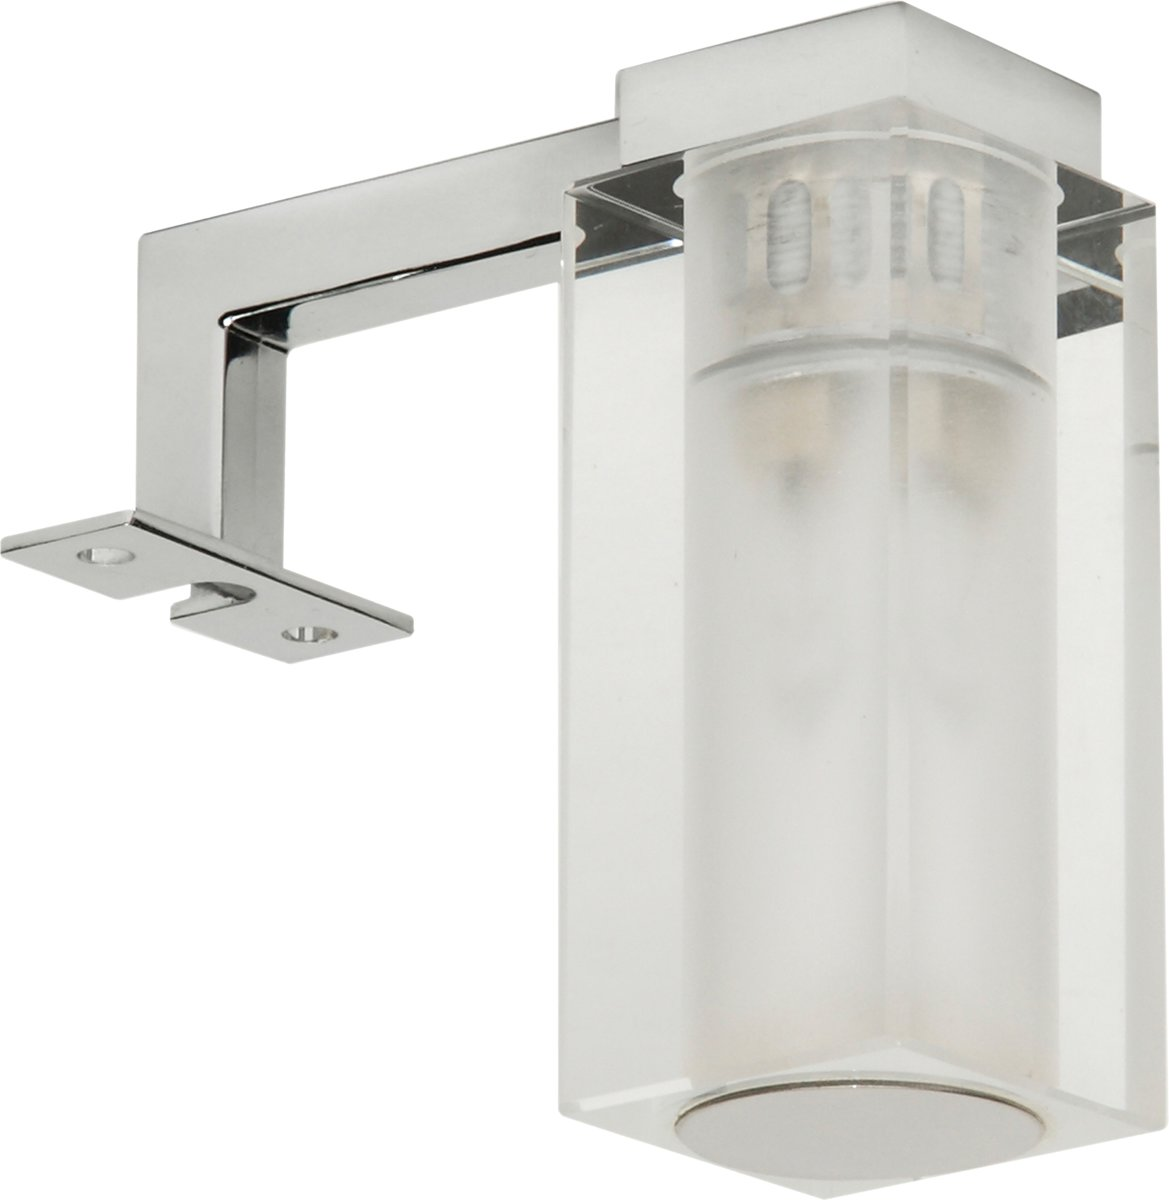 Tiger Brooke - Halogeen lamp - 25W - Chroom kopen